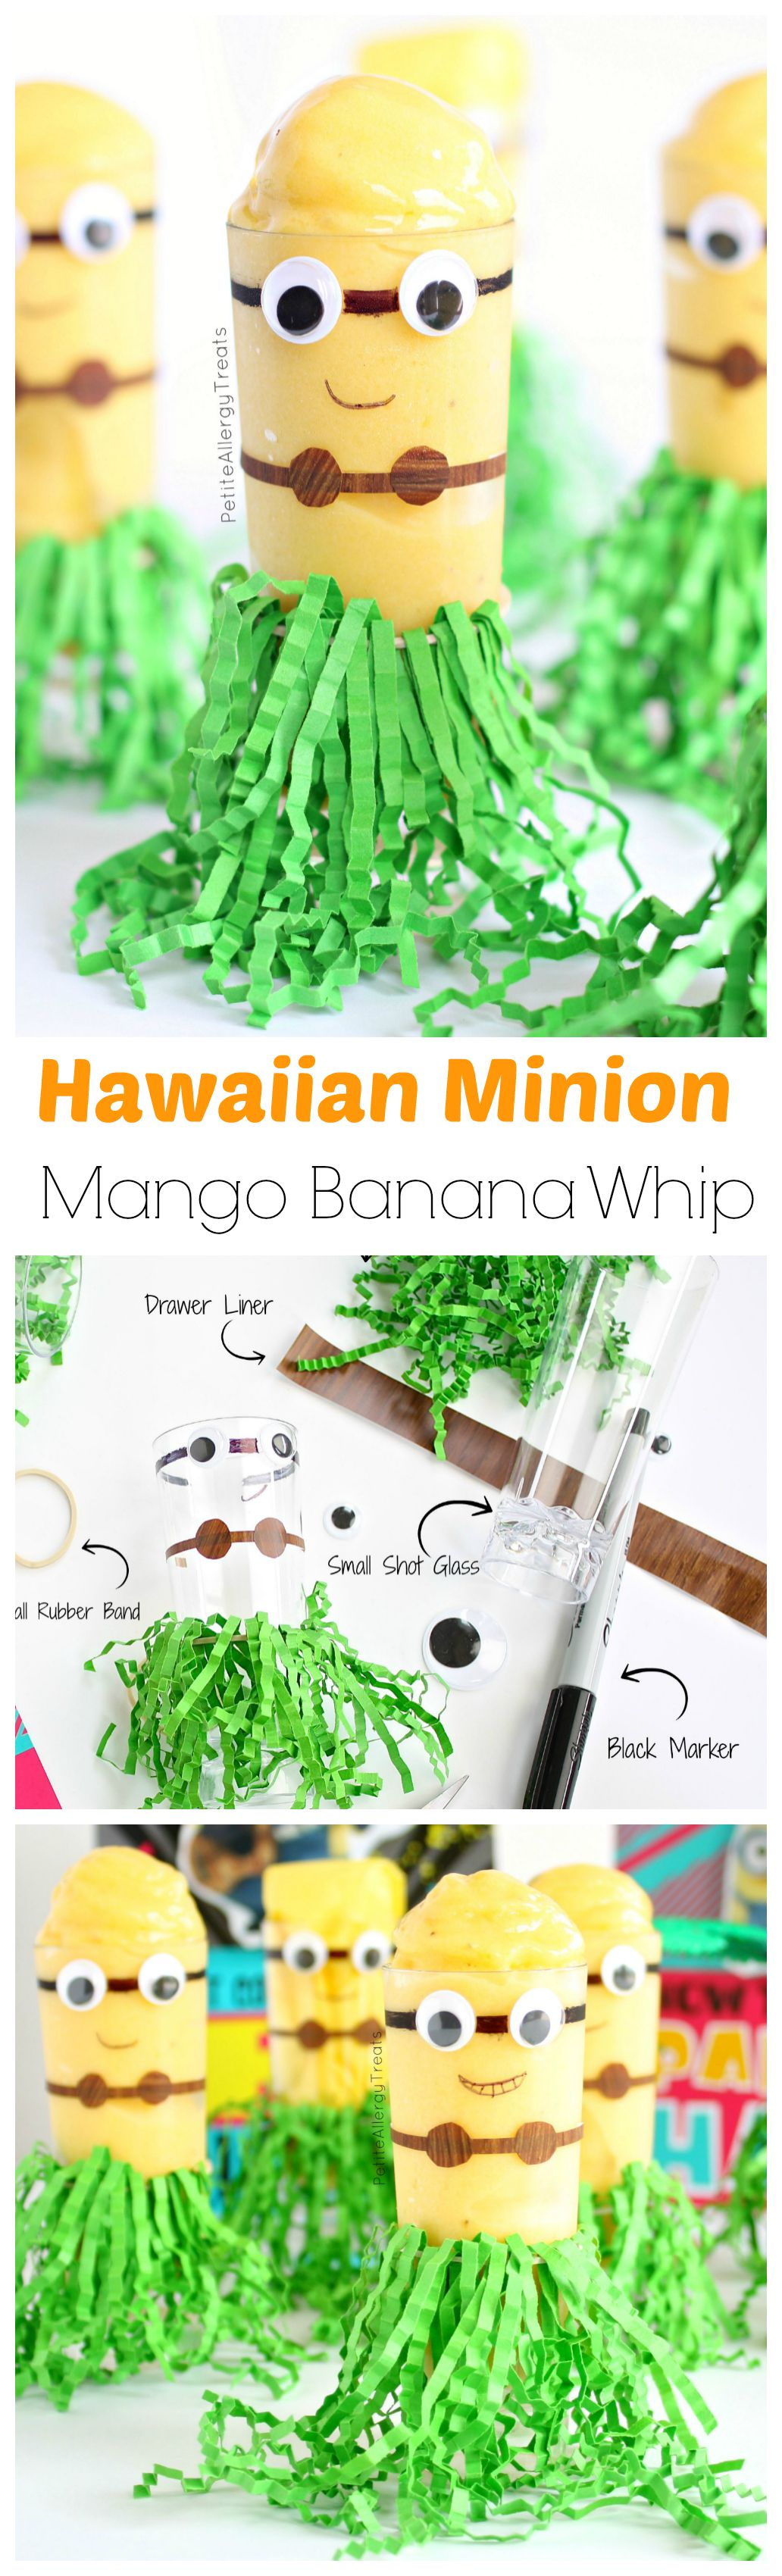 Hawaiian Minion Craft with Mango Banana Whip (dairy free)- Mango Banana flavored whip in a cute DIY Minion cup.  #SendSmiles #ad